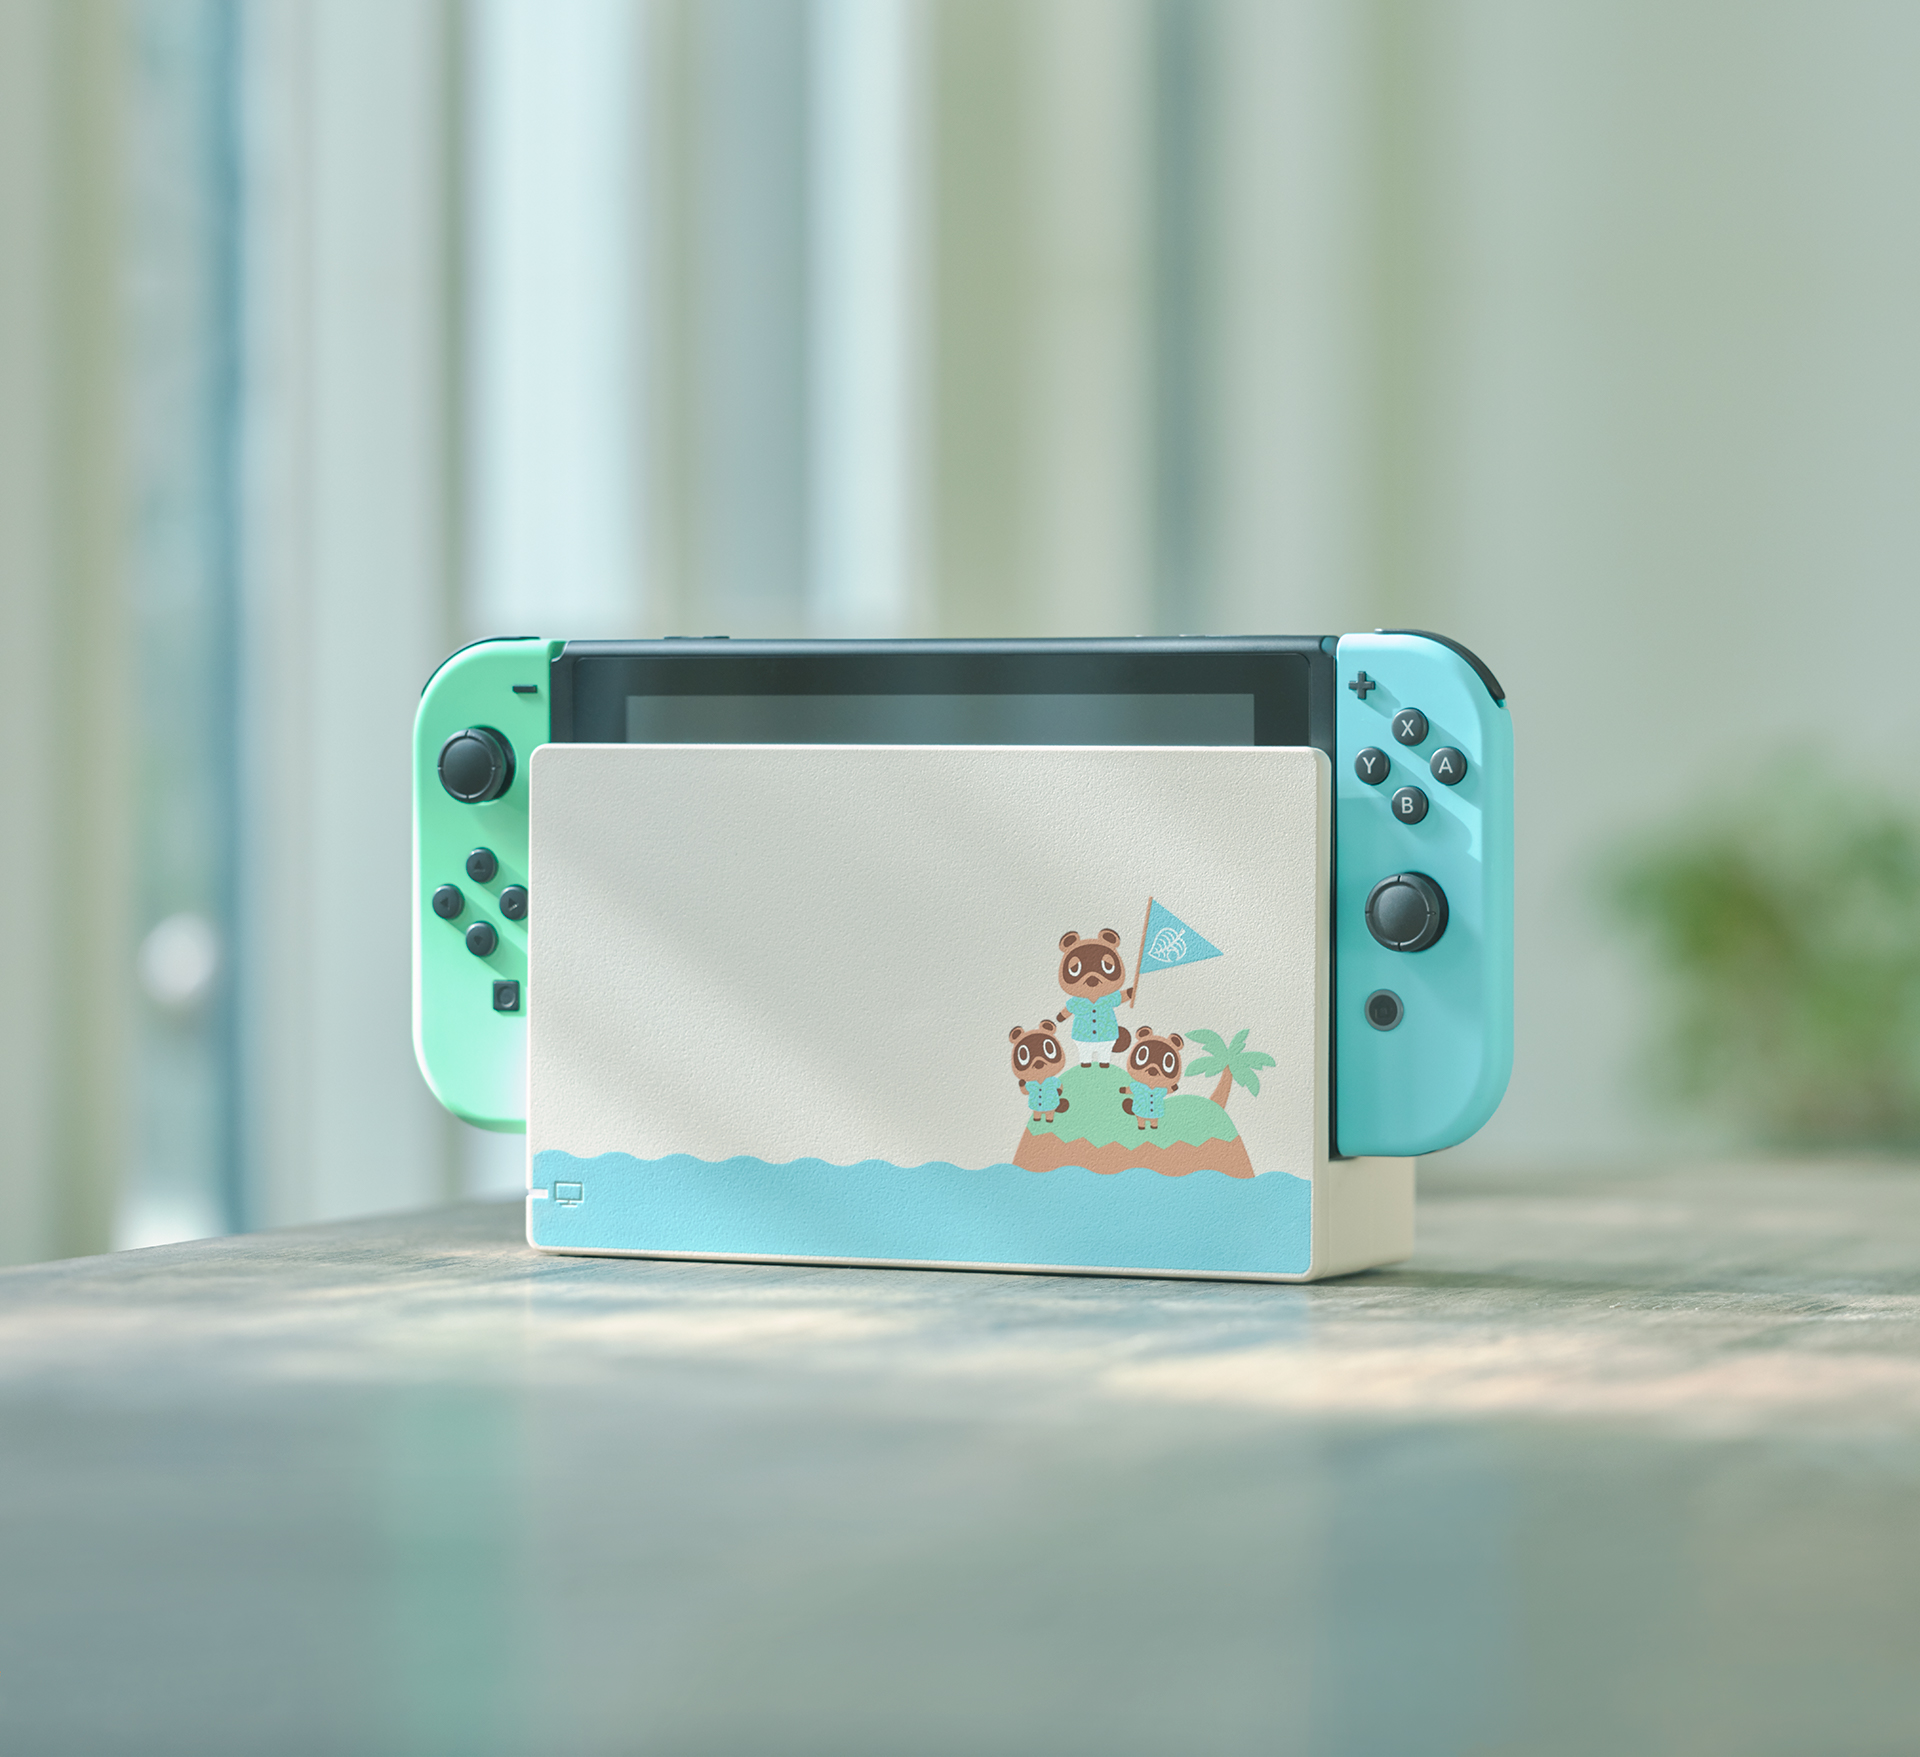 Restock Of Animal Crossing Limited Edition Switch Consoles